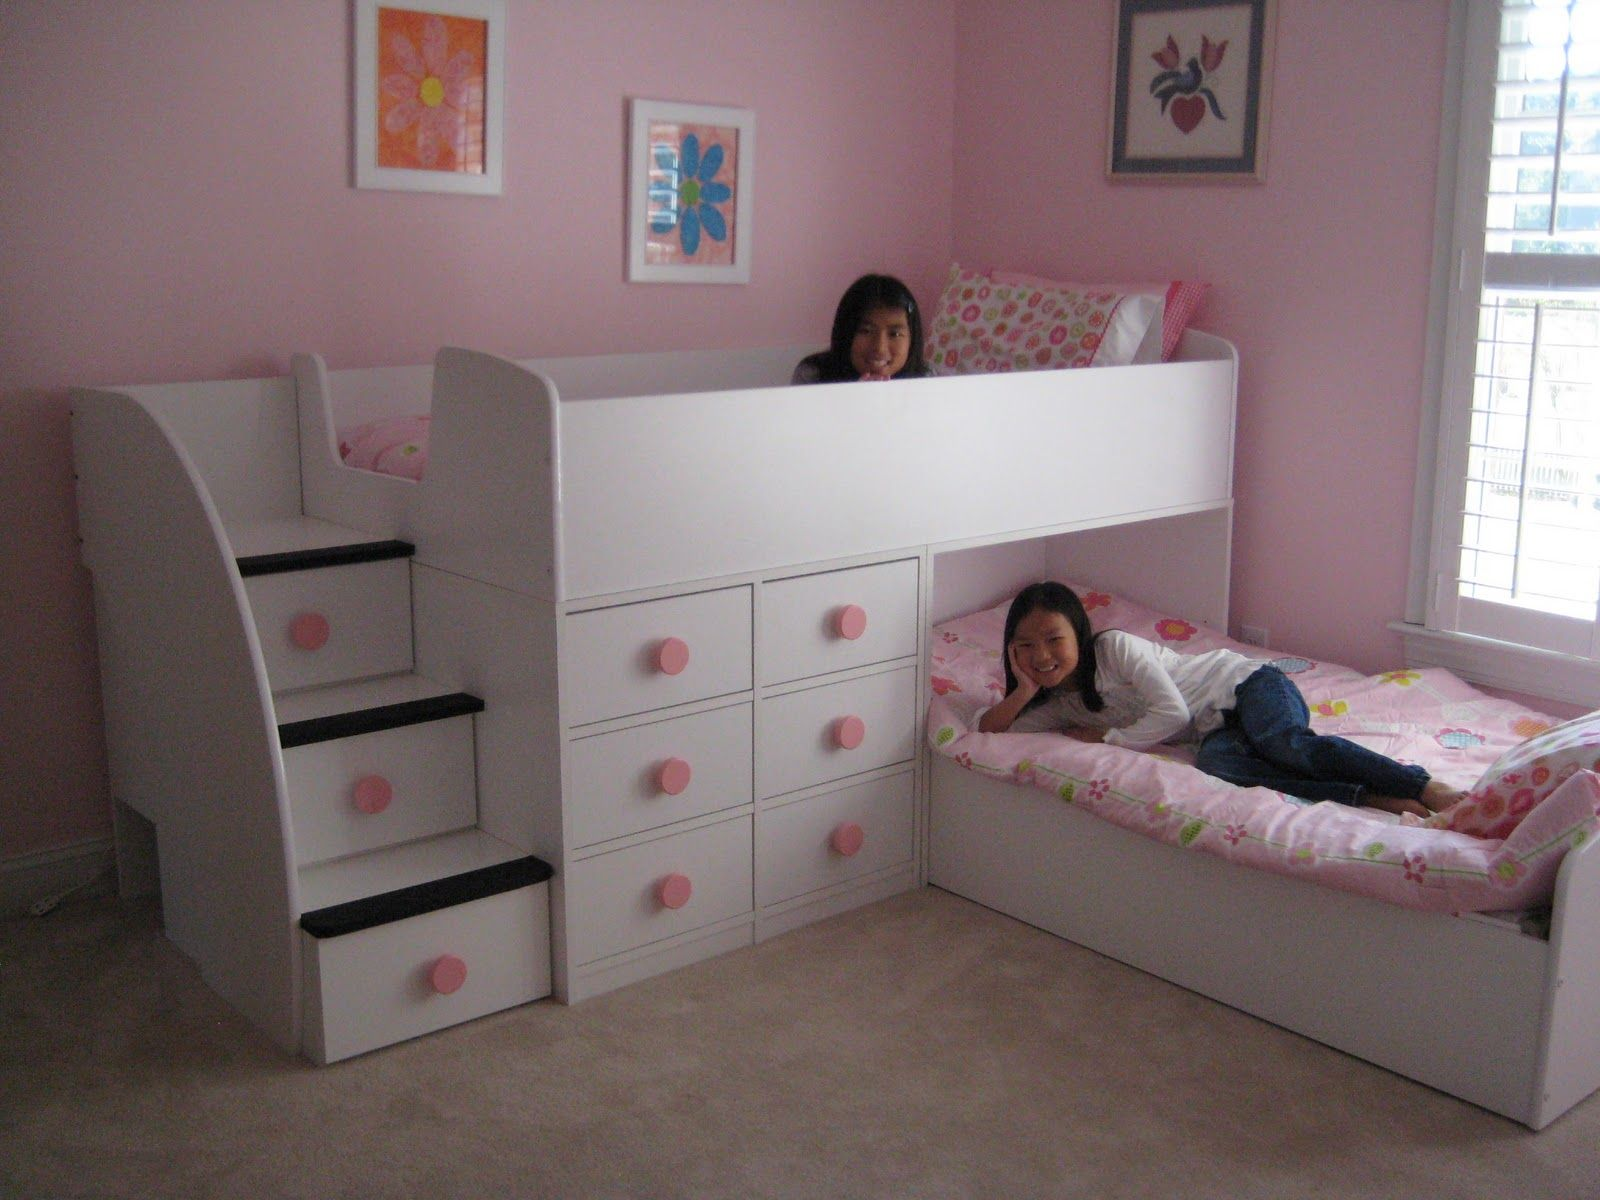 Bunk beds with slide for teenage girls - Lavender Linens On White Bunk Beds Pbkids Beds For Girls For